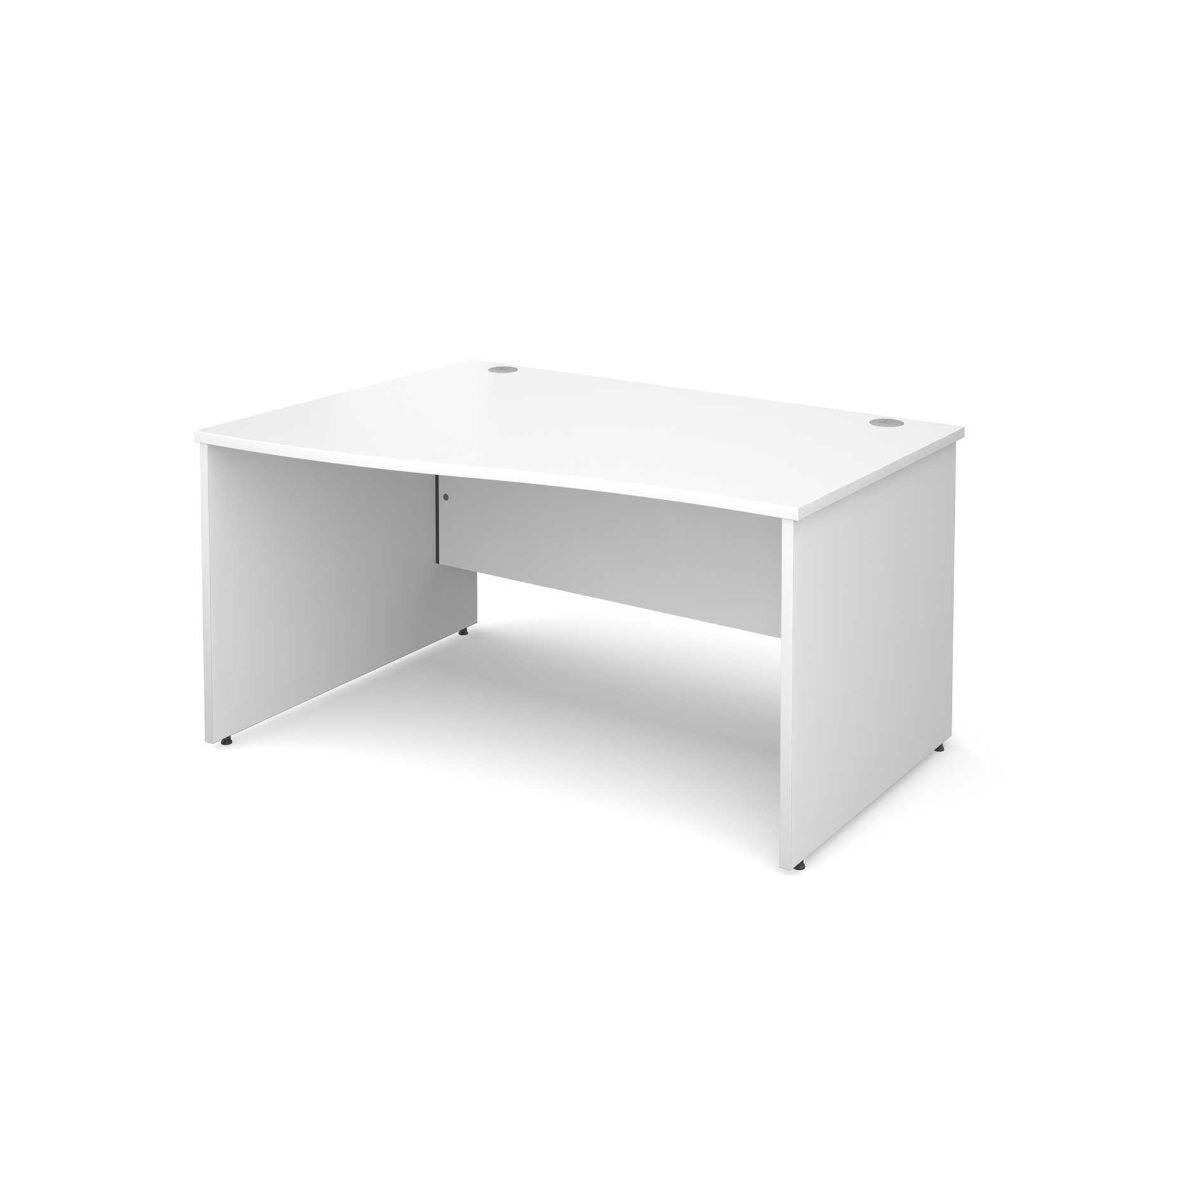 Maestro 25 Left Hand Wave 1400 Desk with End Panel White